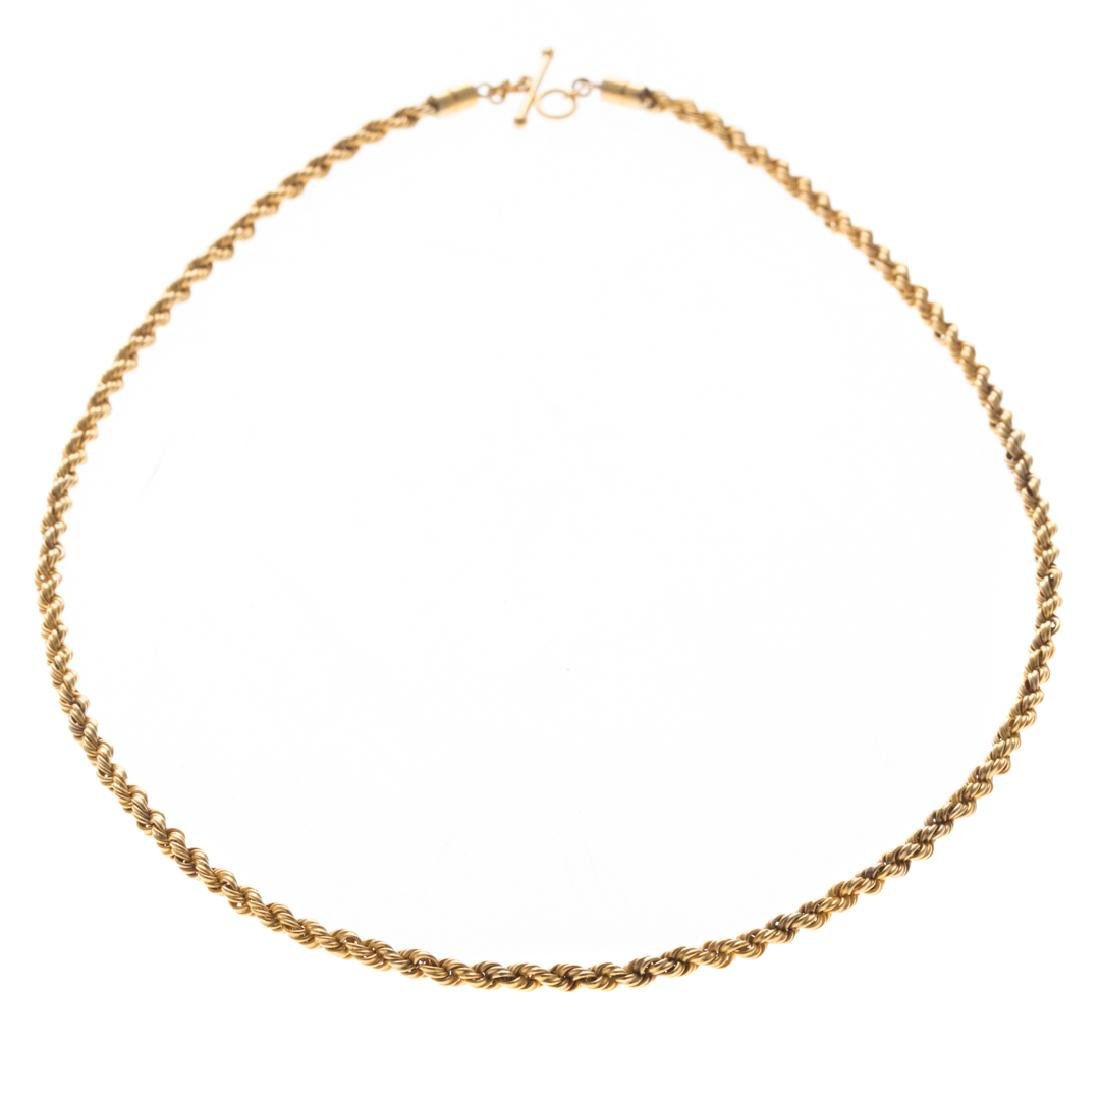 A Hefty Rope Chain in 18K Yellow Gold